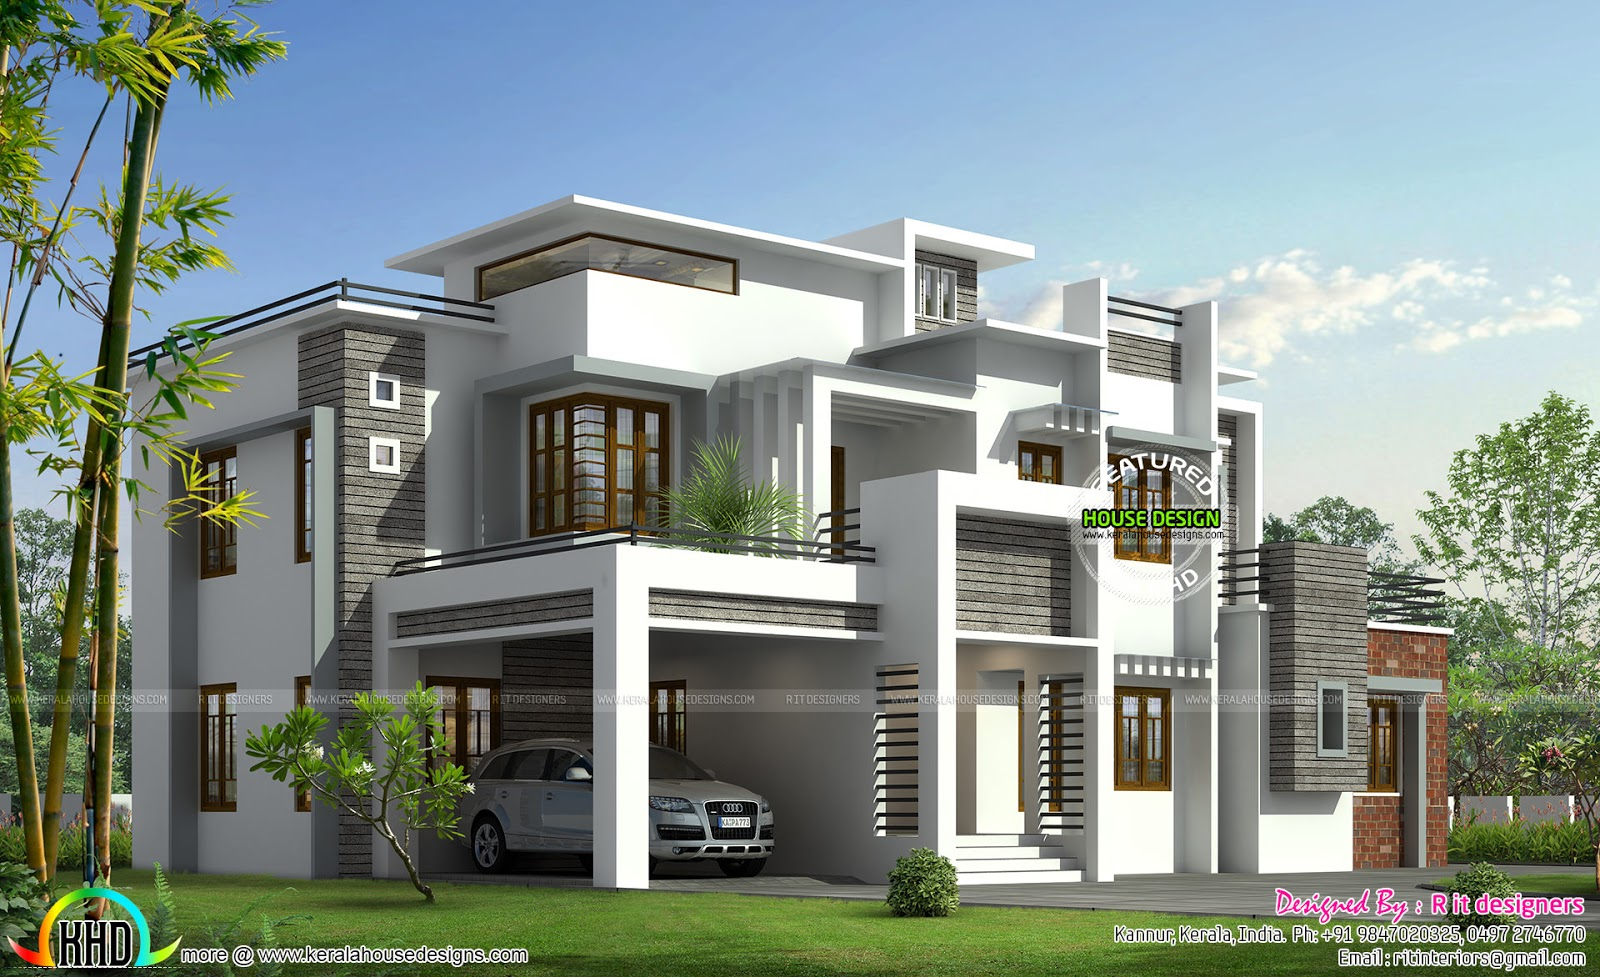 Box model contemporary house kerala home design and for Modern home designs photos